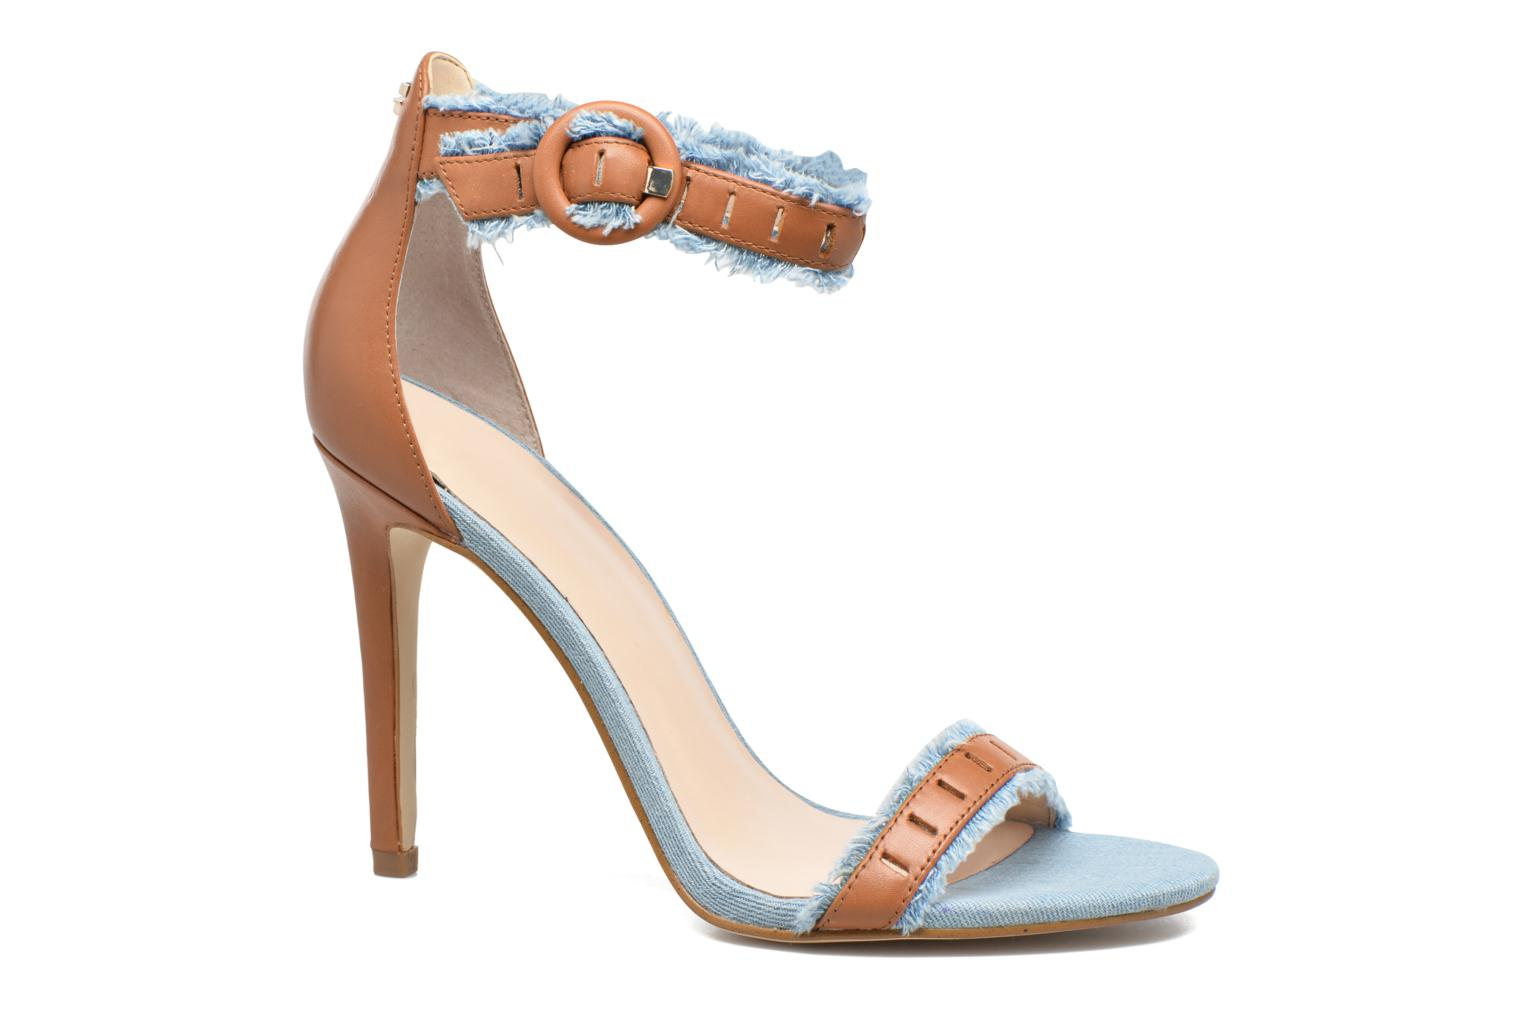 Marques Chaussure luxe femme Guess femme Petra Rose / beige brown